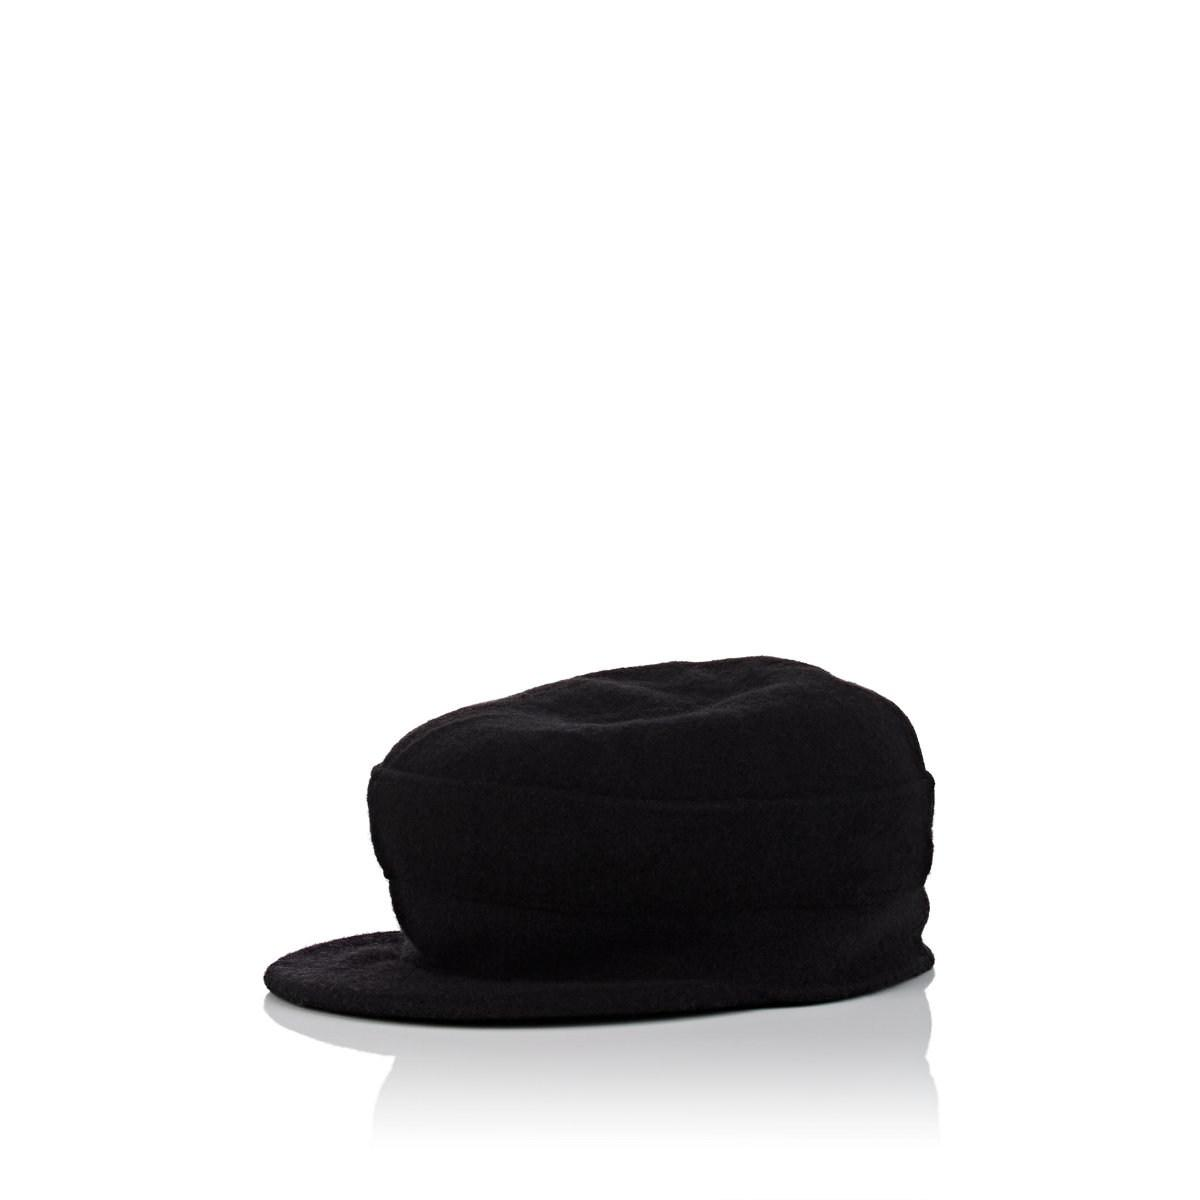 34779b1941cff Lyst - Barneys New York Wool Conductor Hat in Black - Save 60%